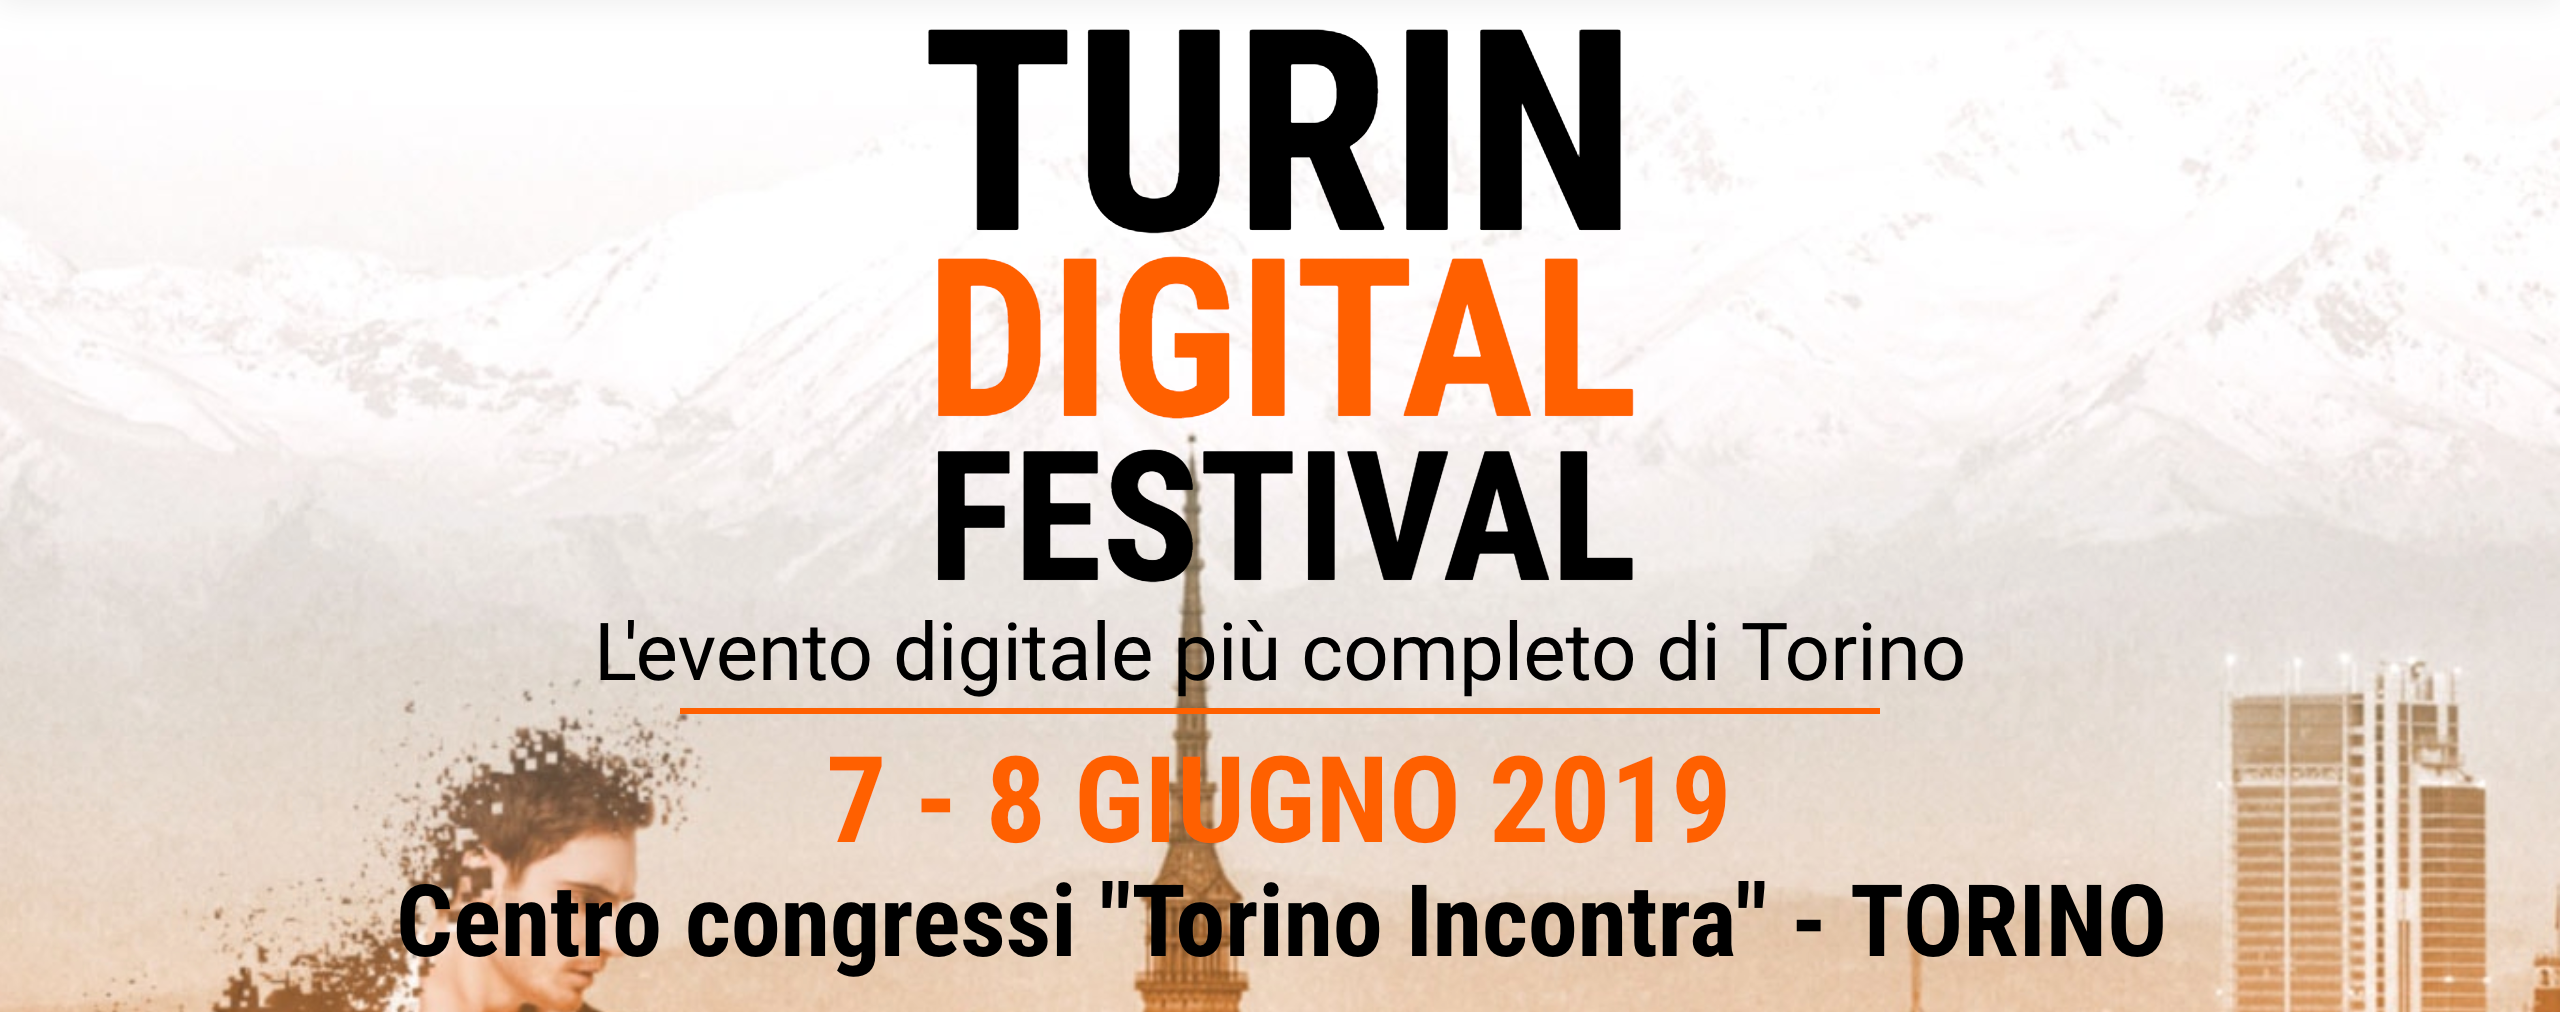 Deegito - Turin Digital Festival - home page dell'evento